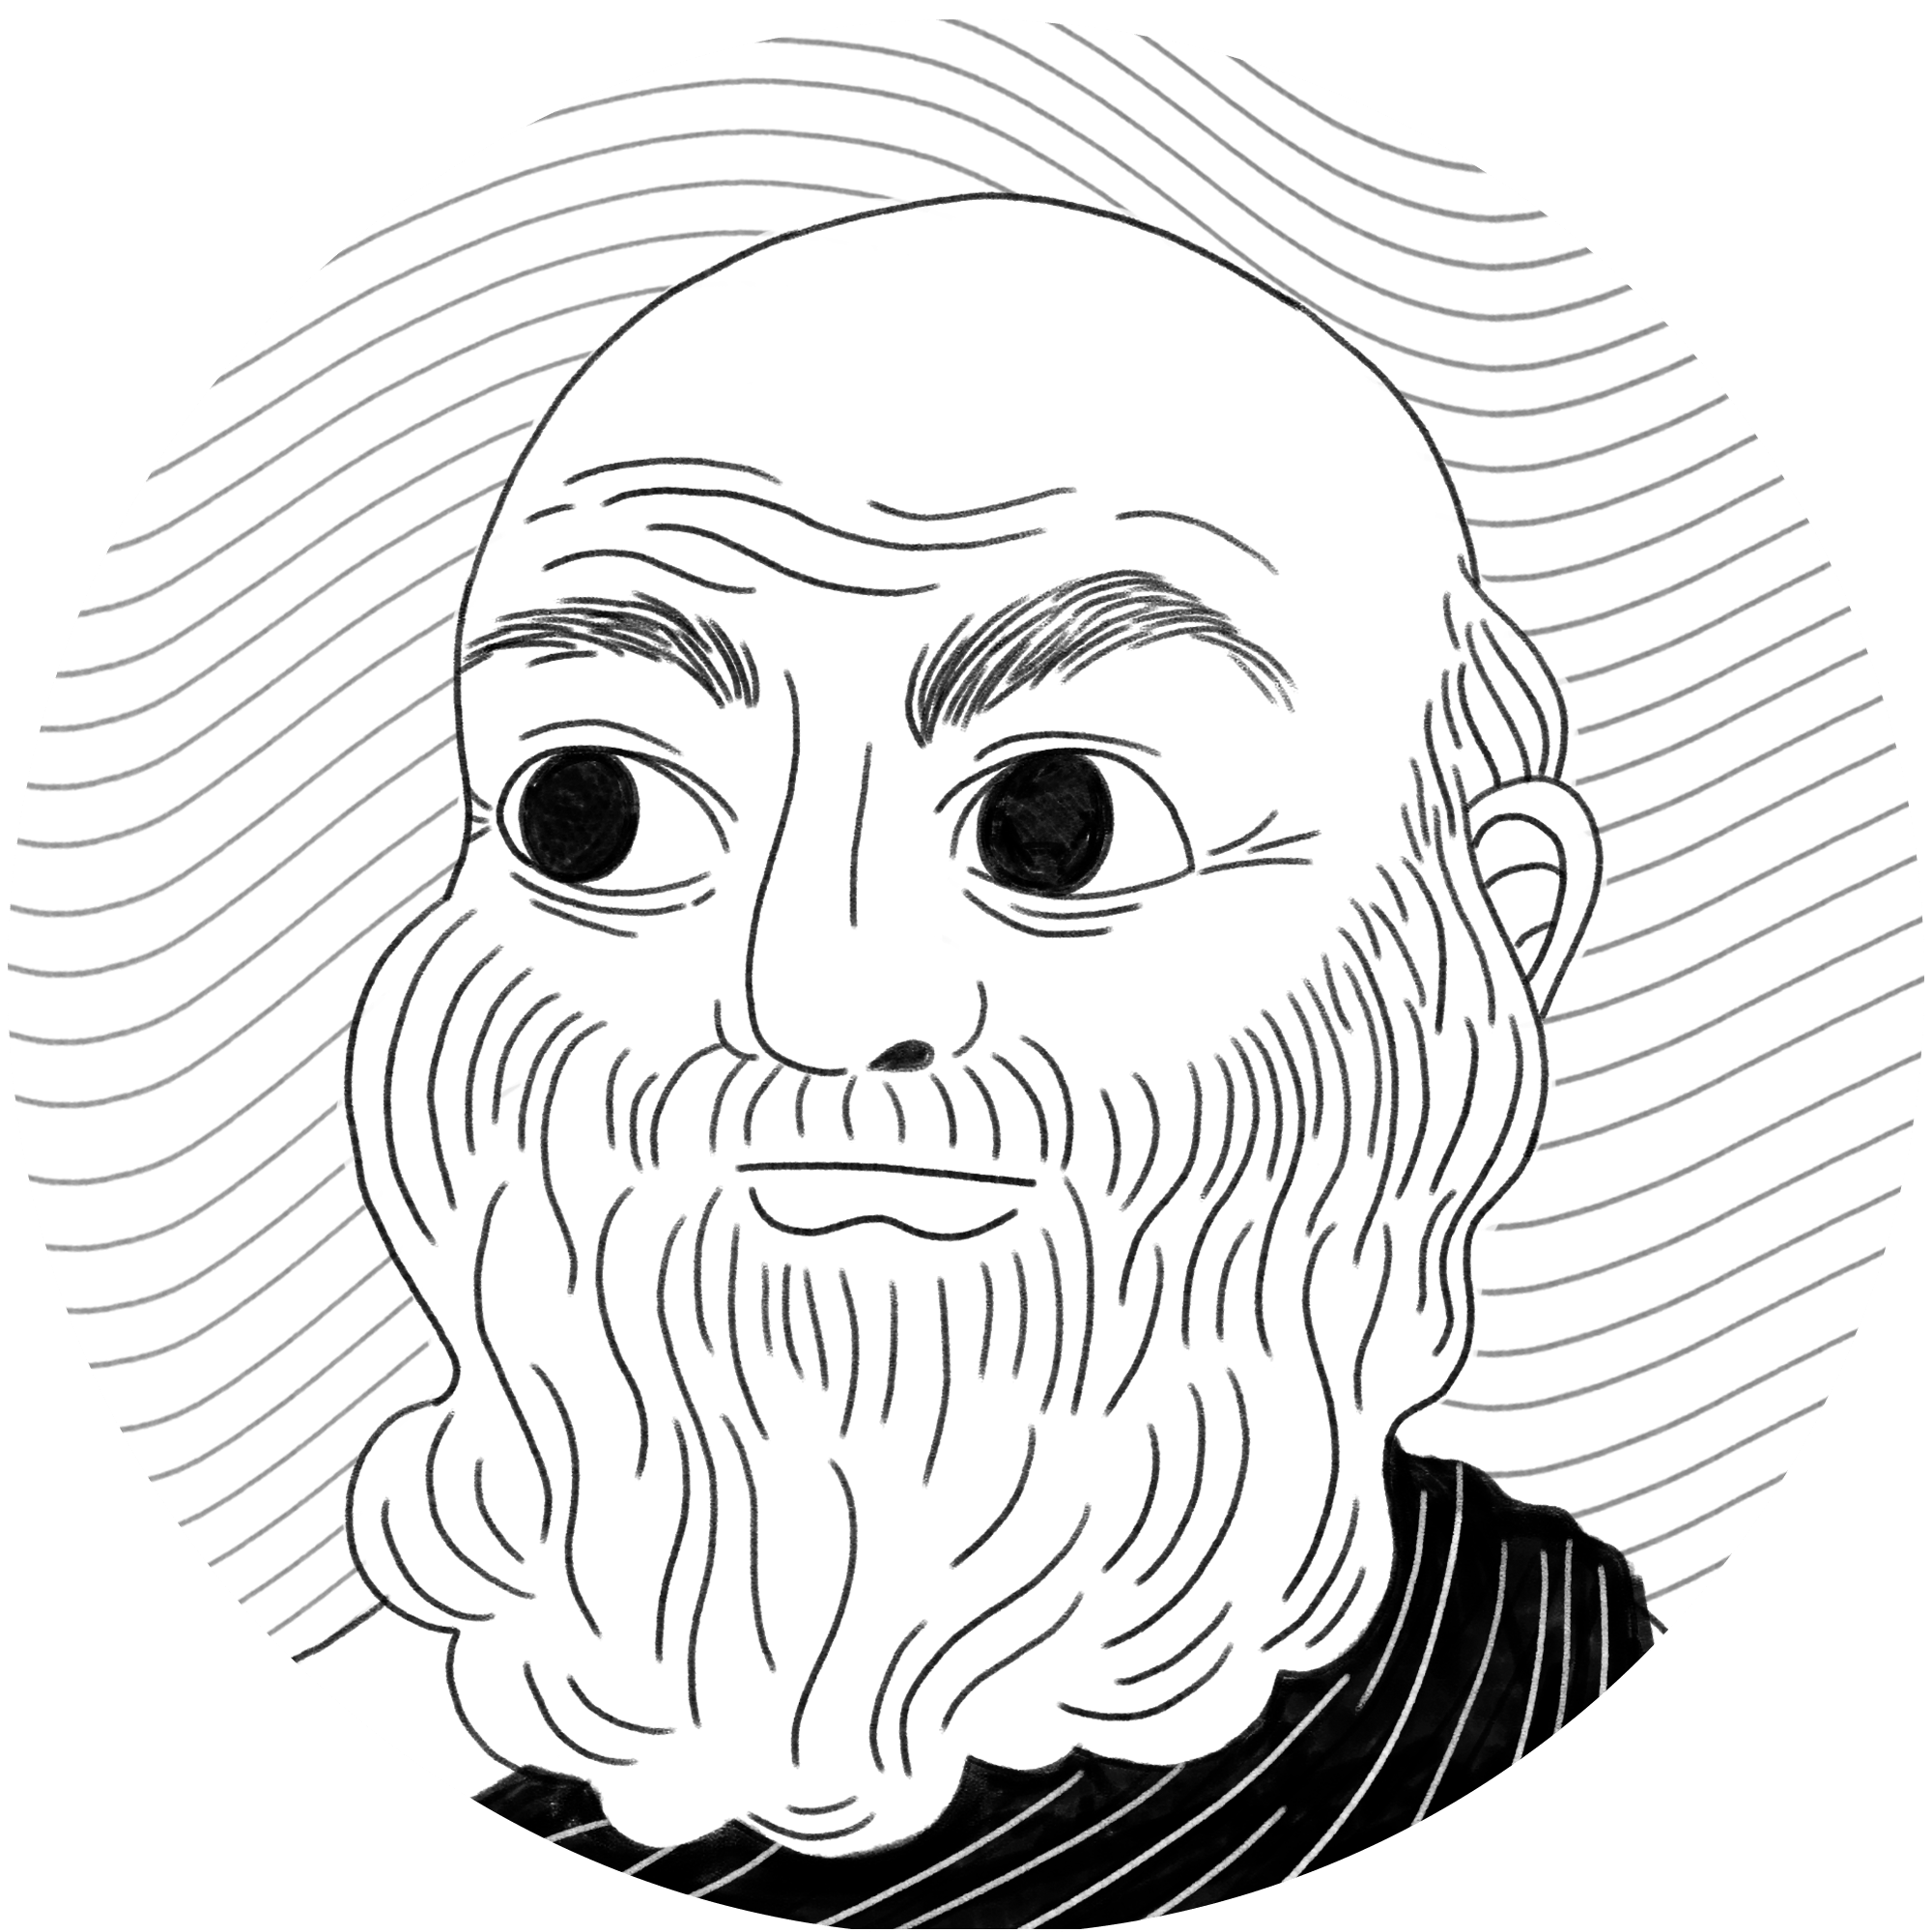 Socrates drawing iphone. Various illustration rhymes with